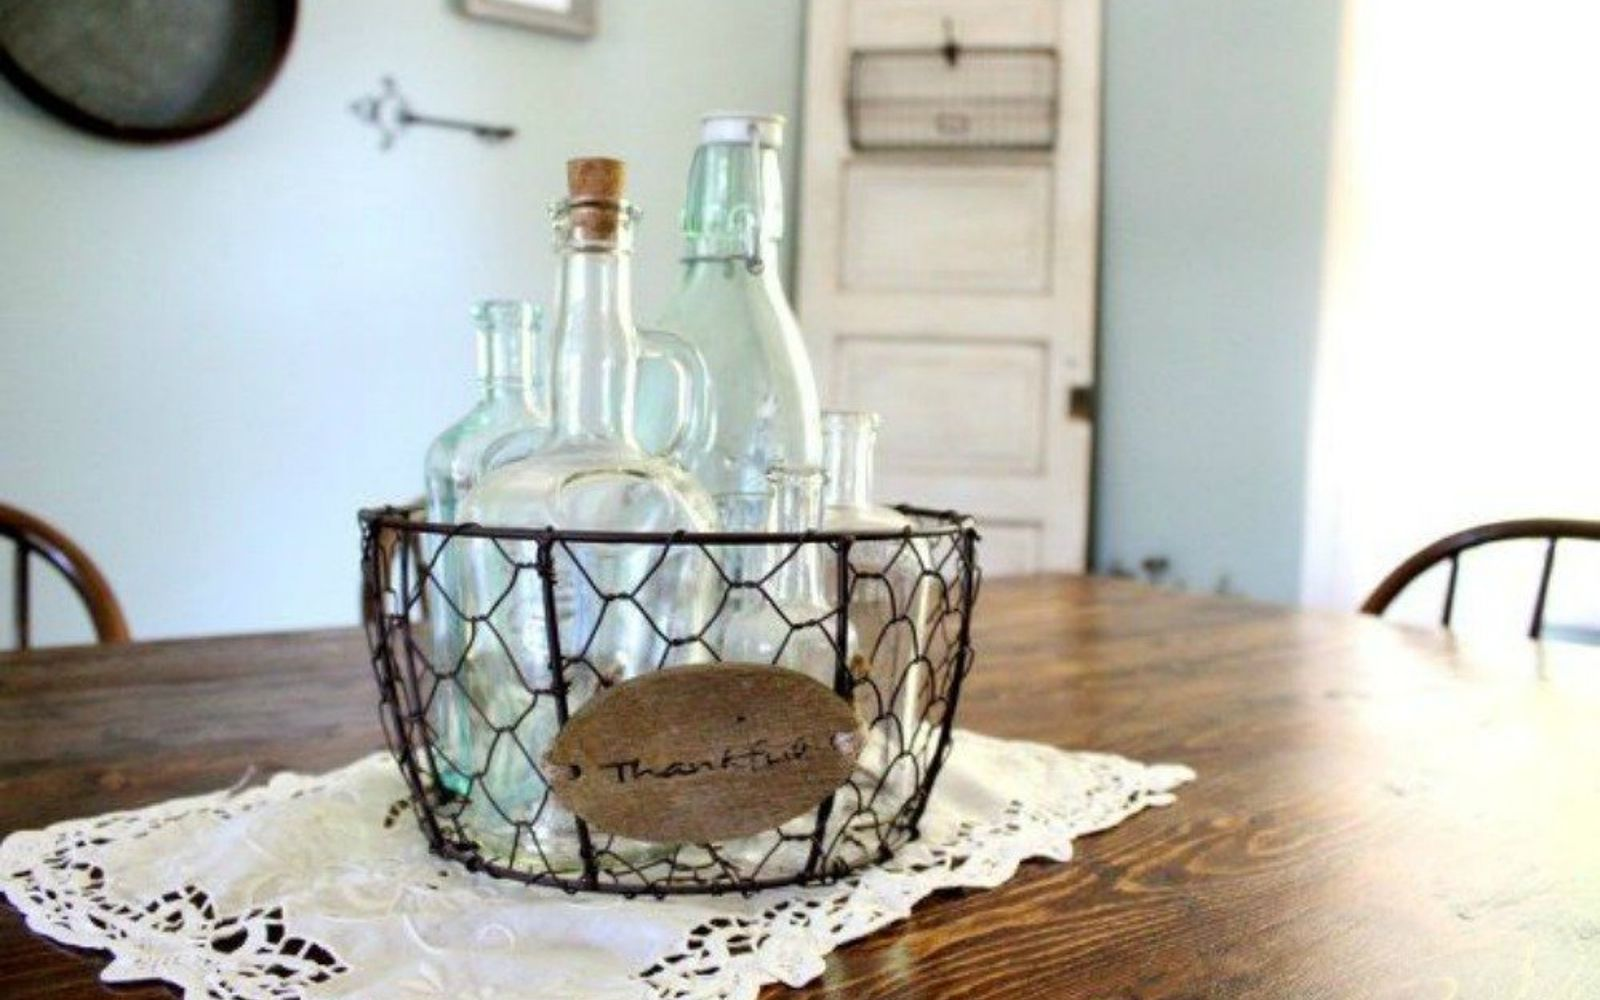 s 14 amazing basket ideas from highly creative moms, crafts, Make them your table s centerpiece